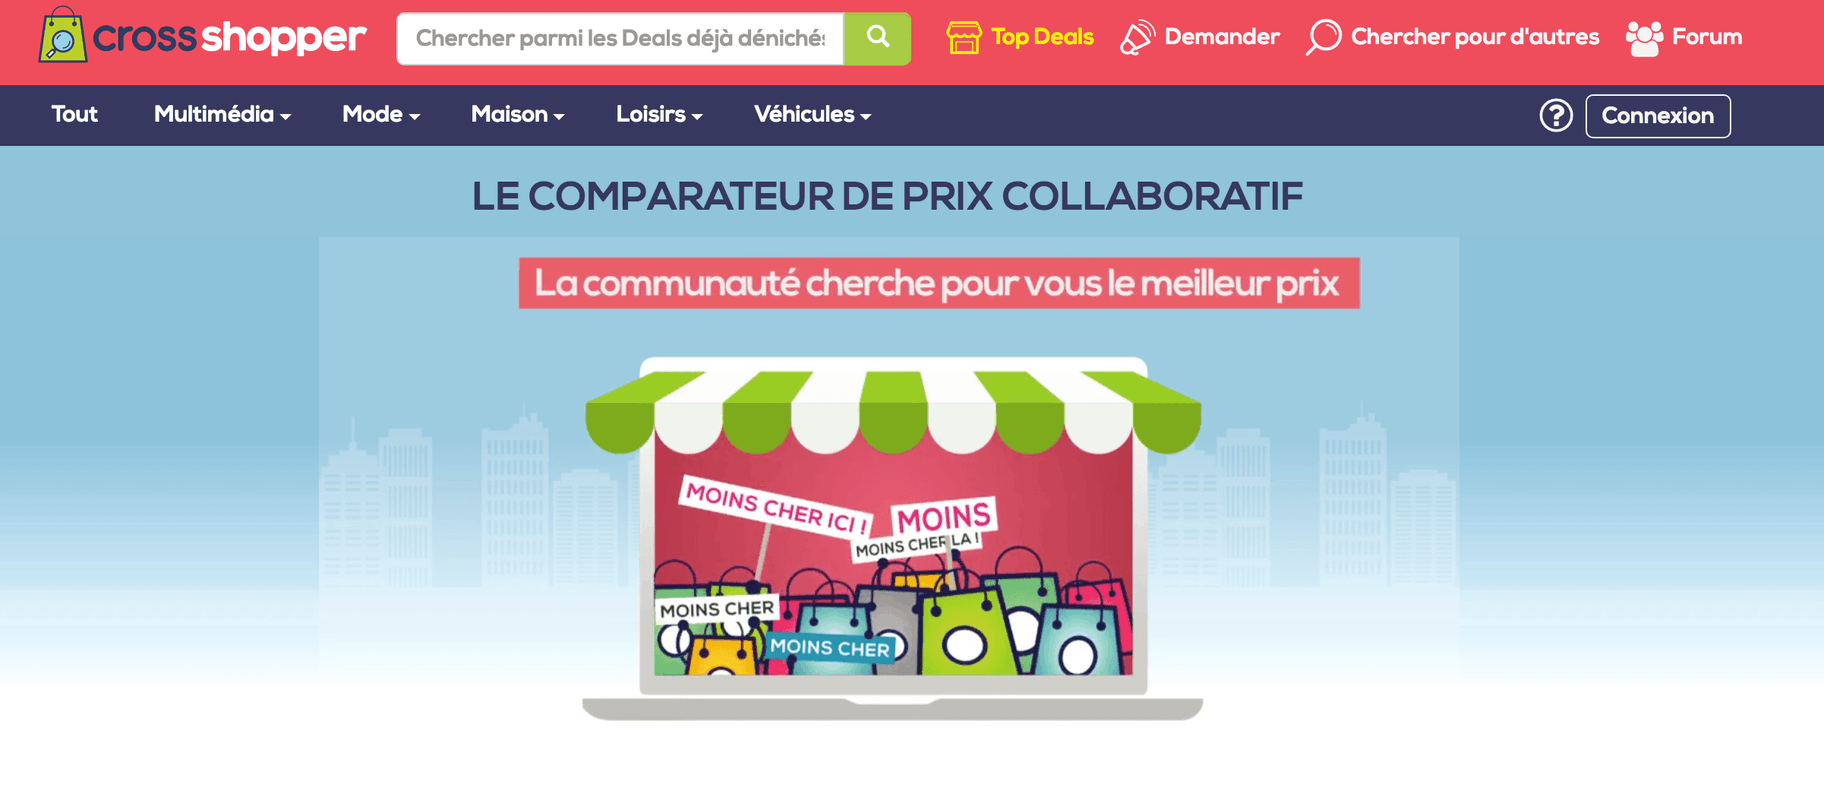 Comparateur de prix Crossshopper